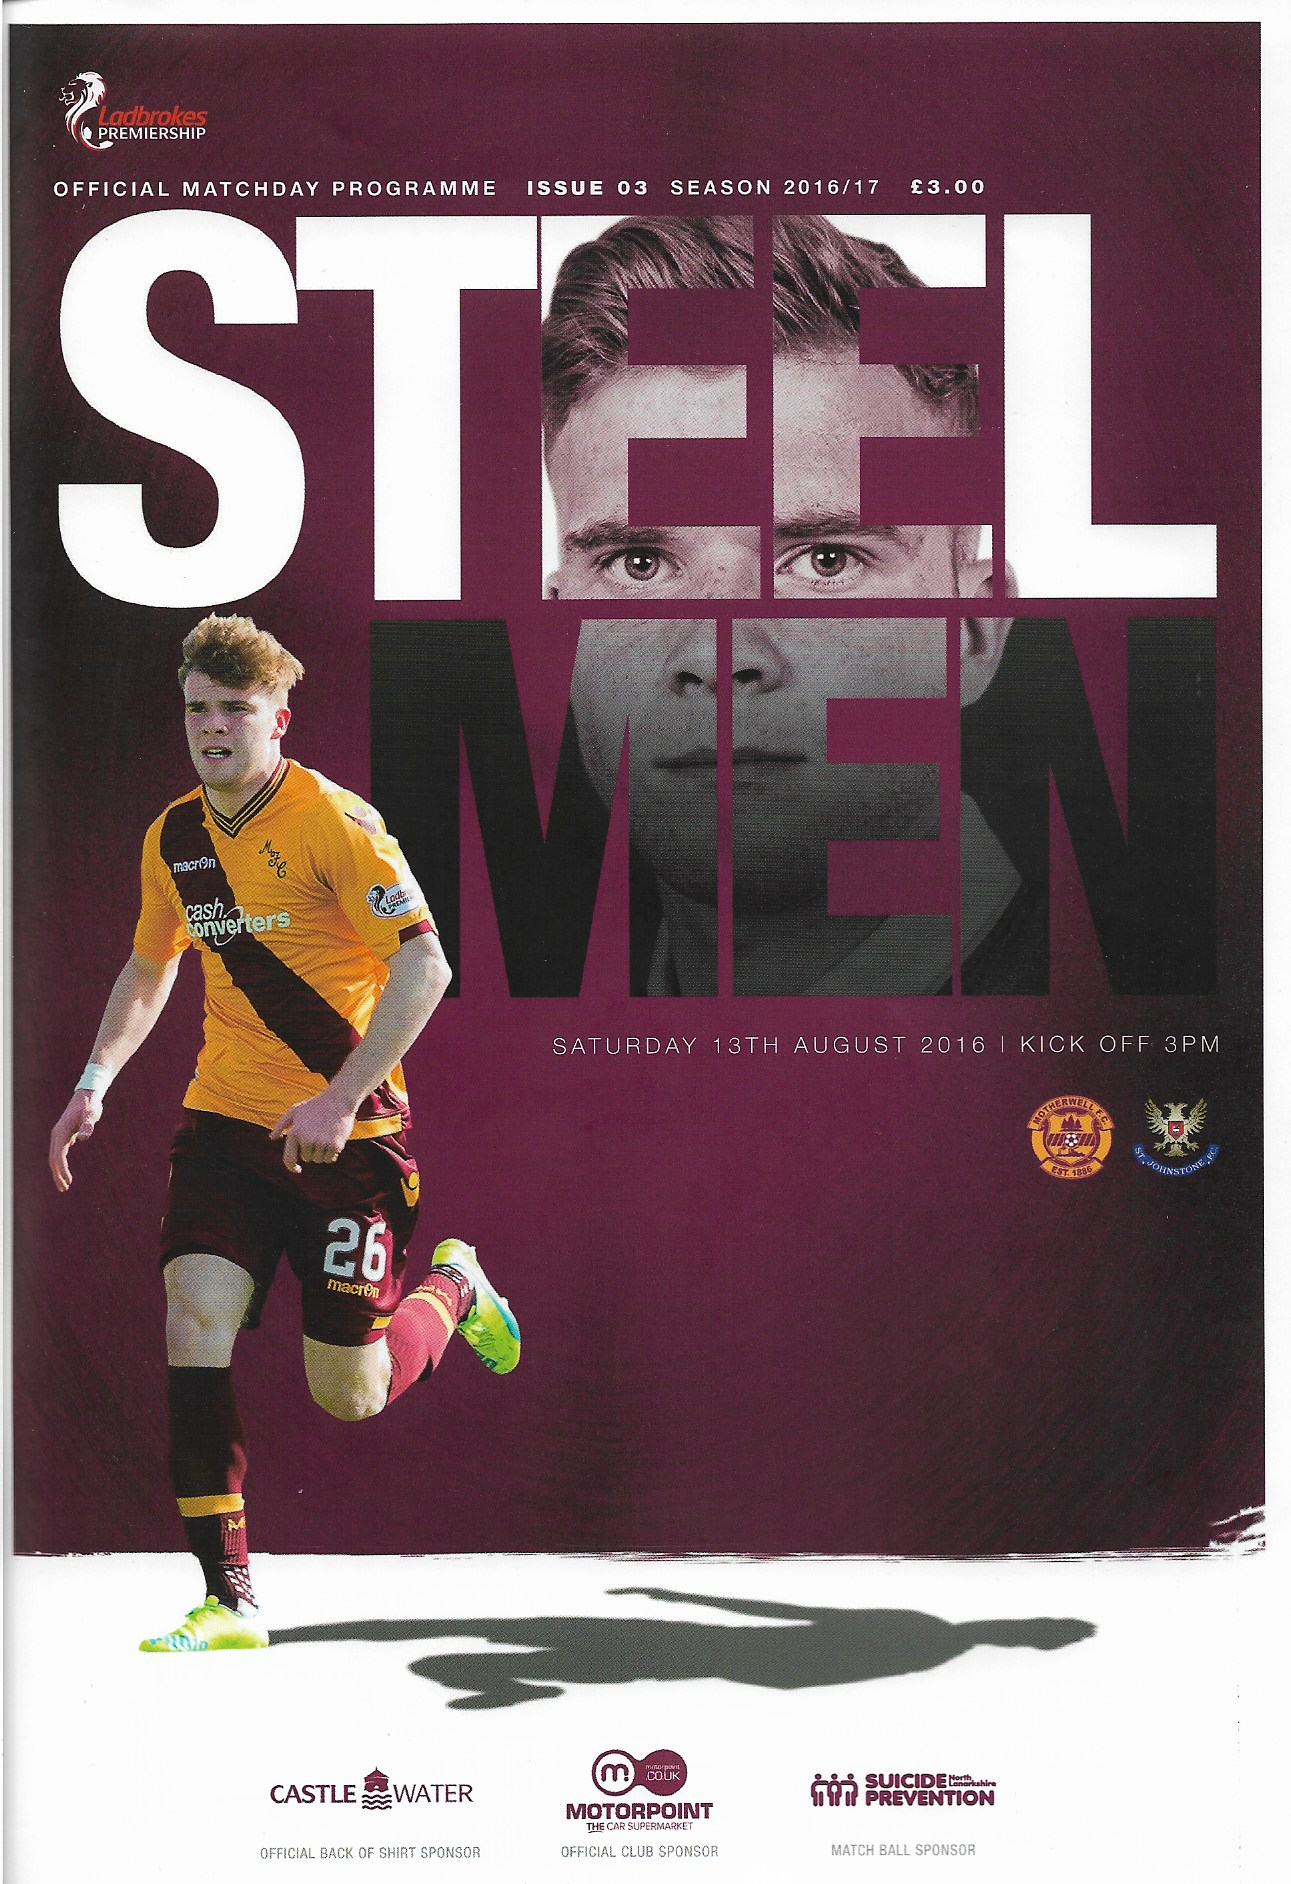 2016/17 Programme Cover